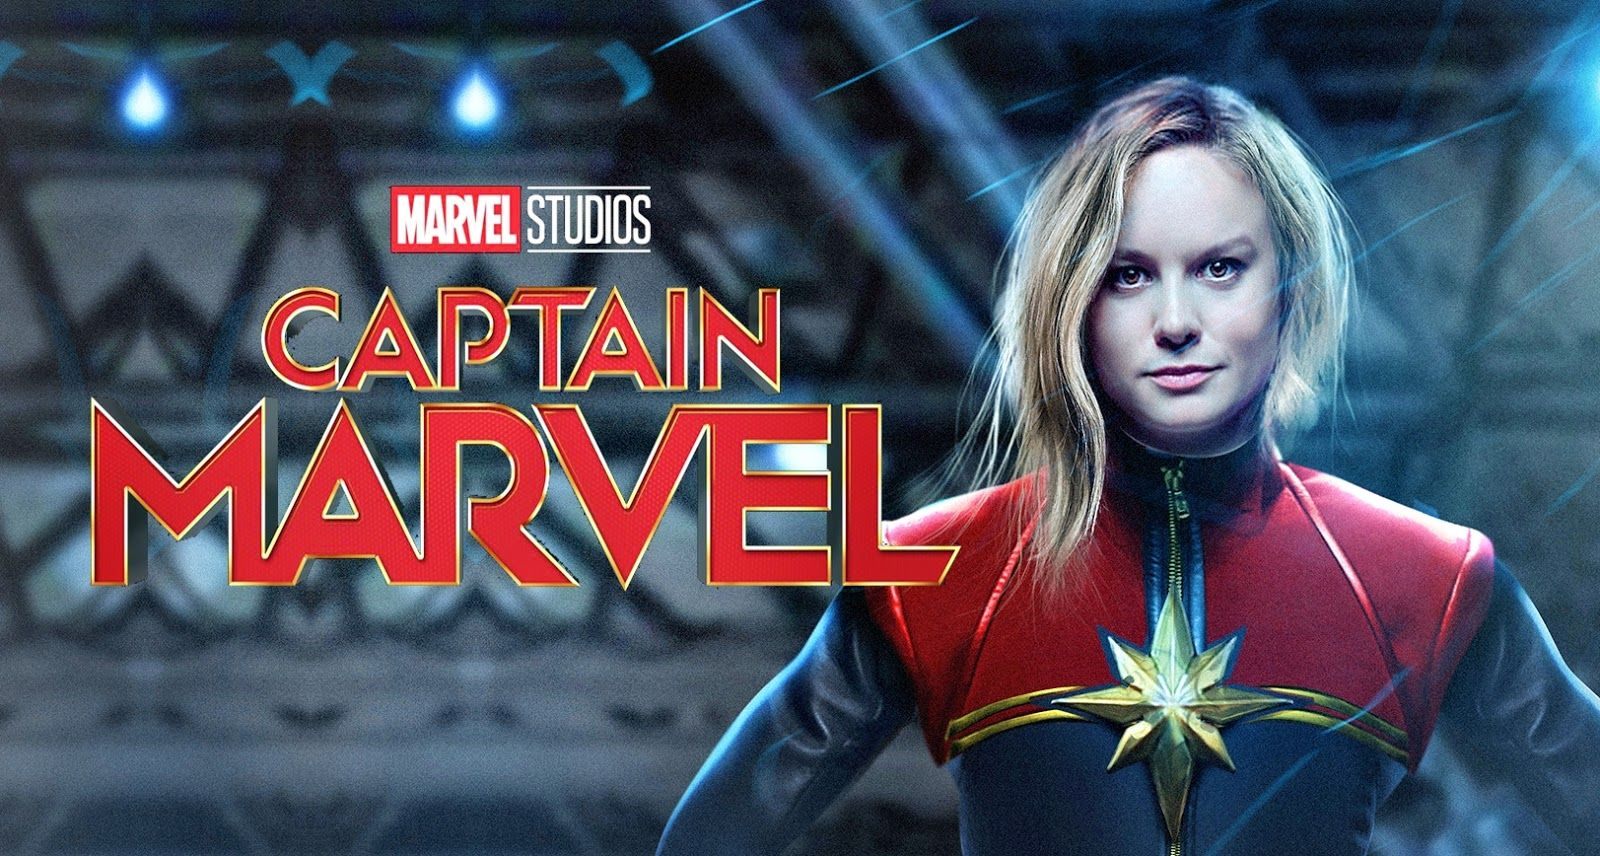 Brie Larson Image HD Wallpapers Pictures Download Free